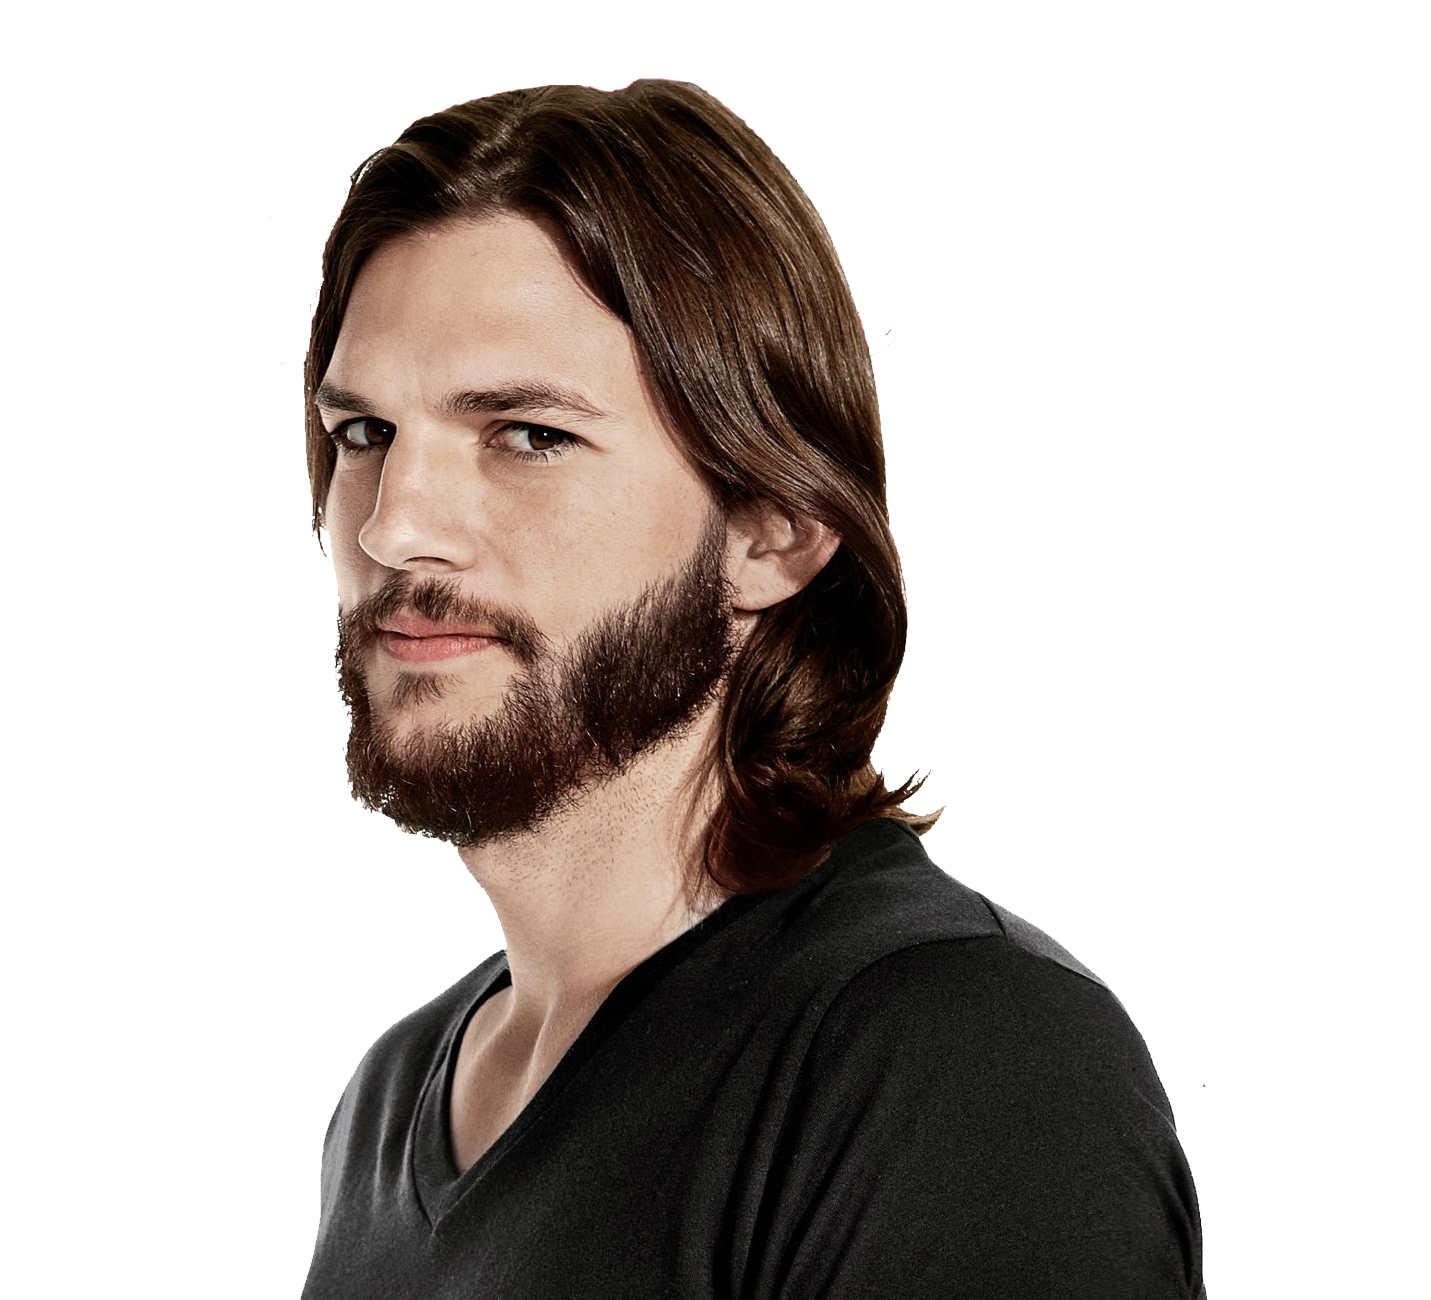 business haircuts for women ashton kutcher beard hair dudes with muscles 6022 | f02e6022d9e08e0ba659da85d3a5a55e